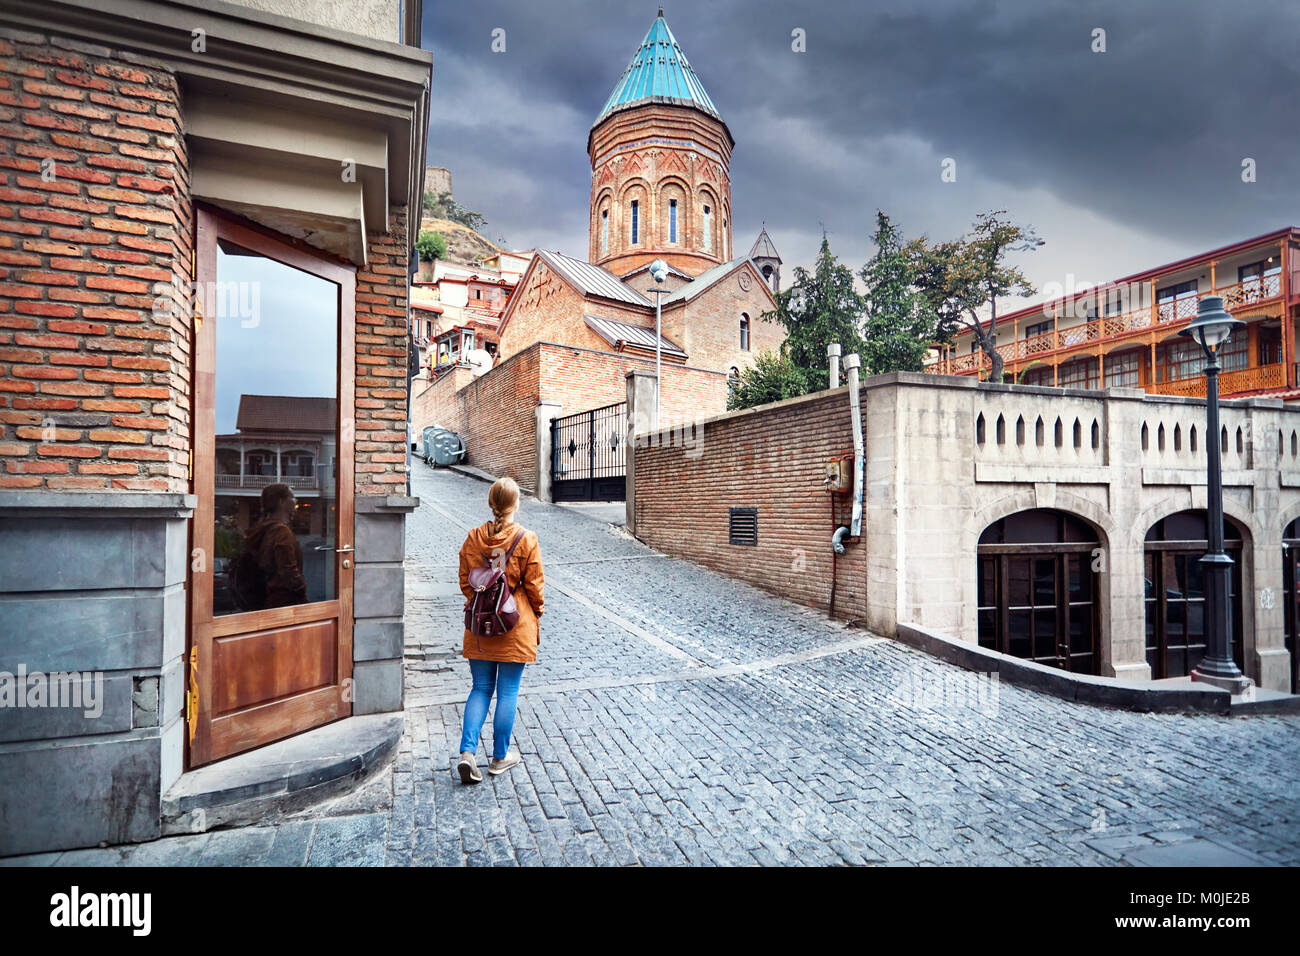 Tourist woman in brown jacket walking down the Old streets near church in central Tbilisi, Georgia - Stock Image